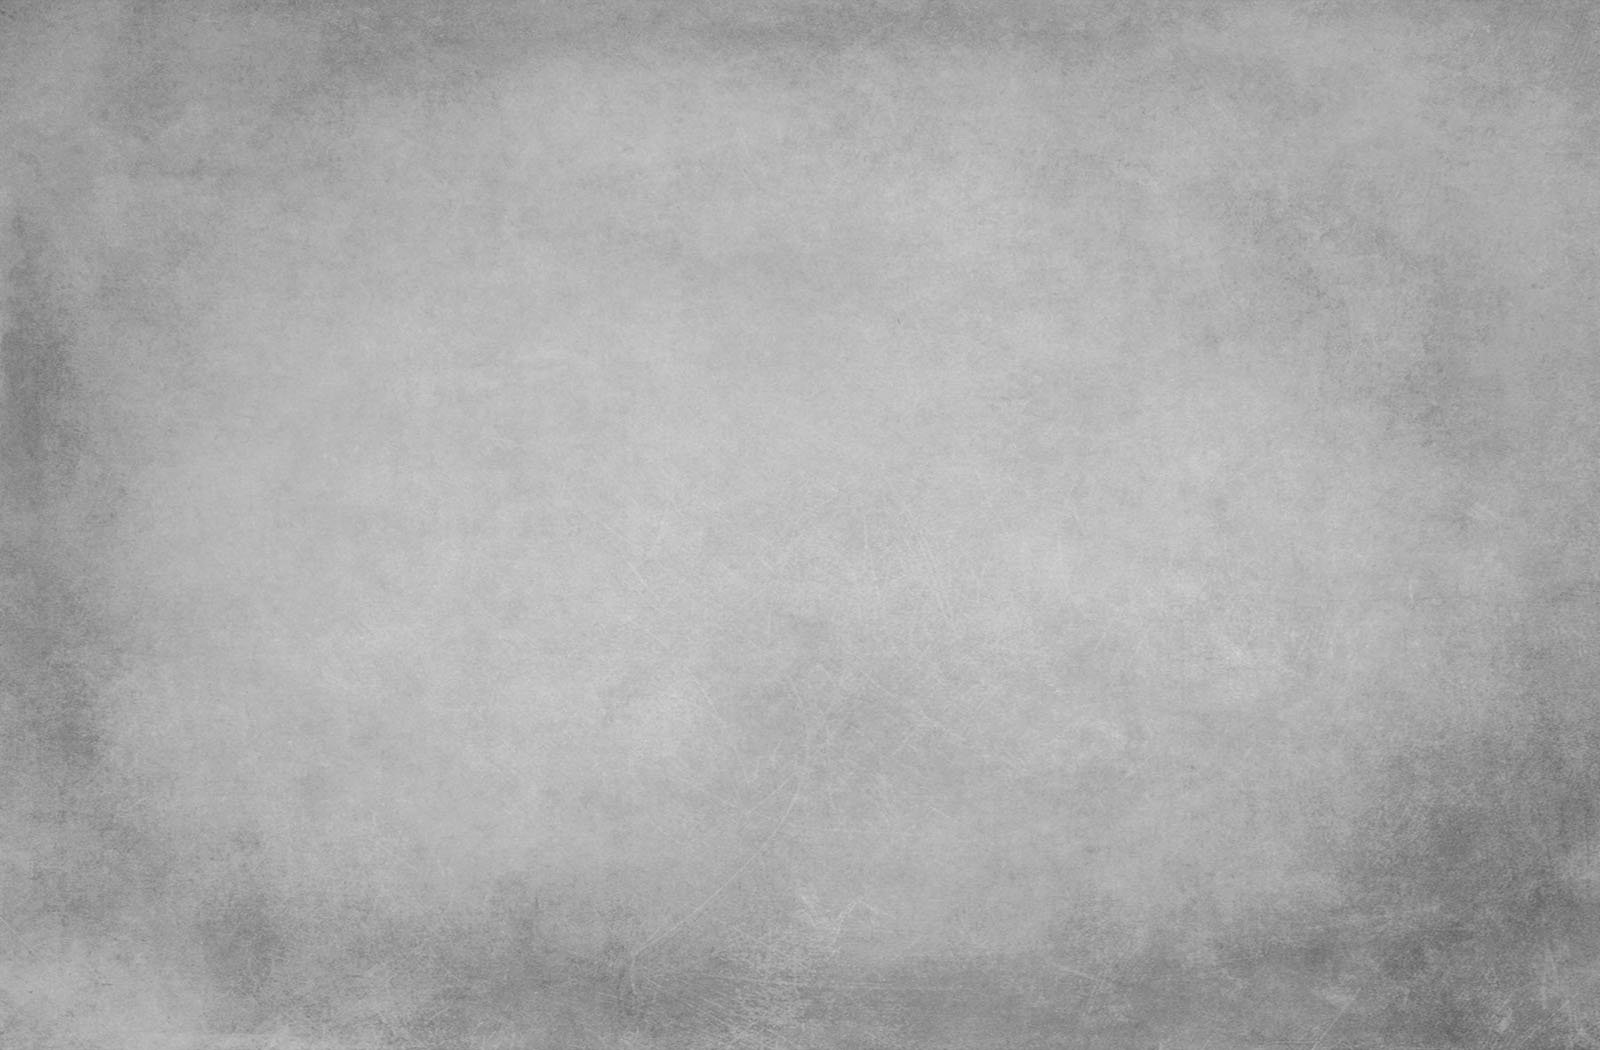 Light Grey Background Wallpaper WallpaperSafari